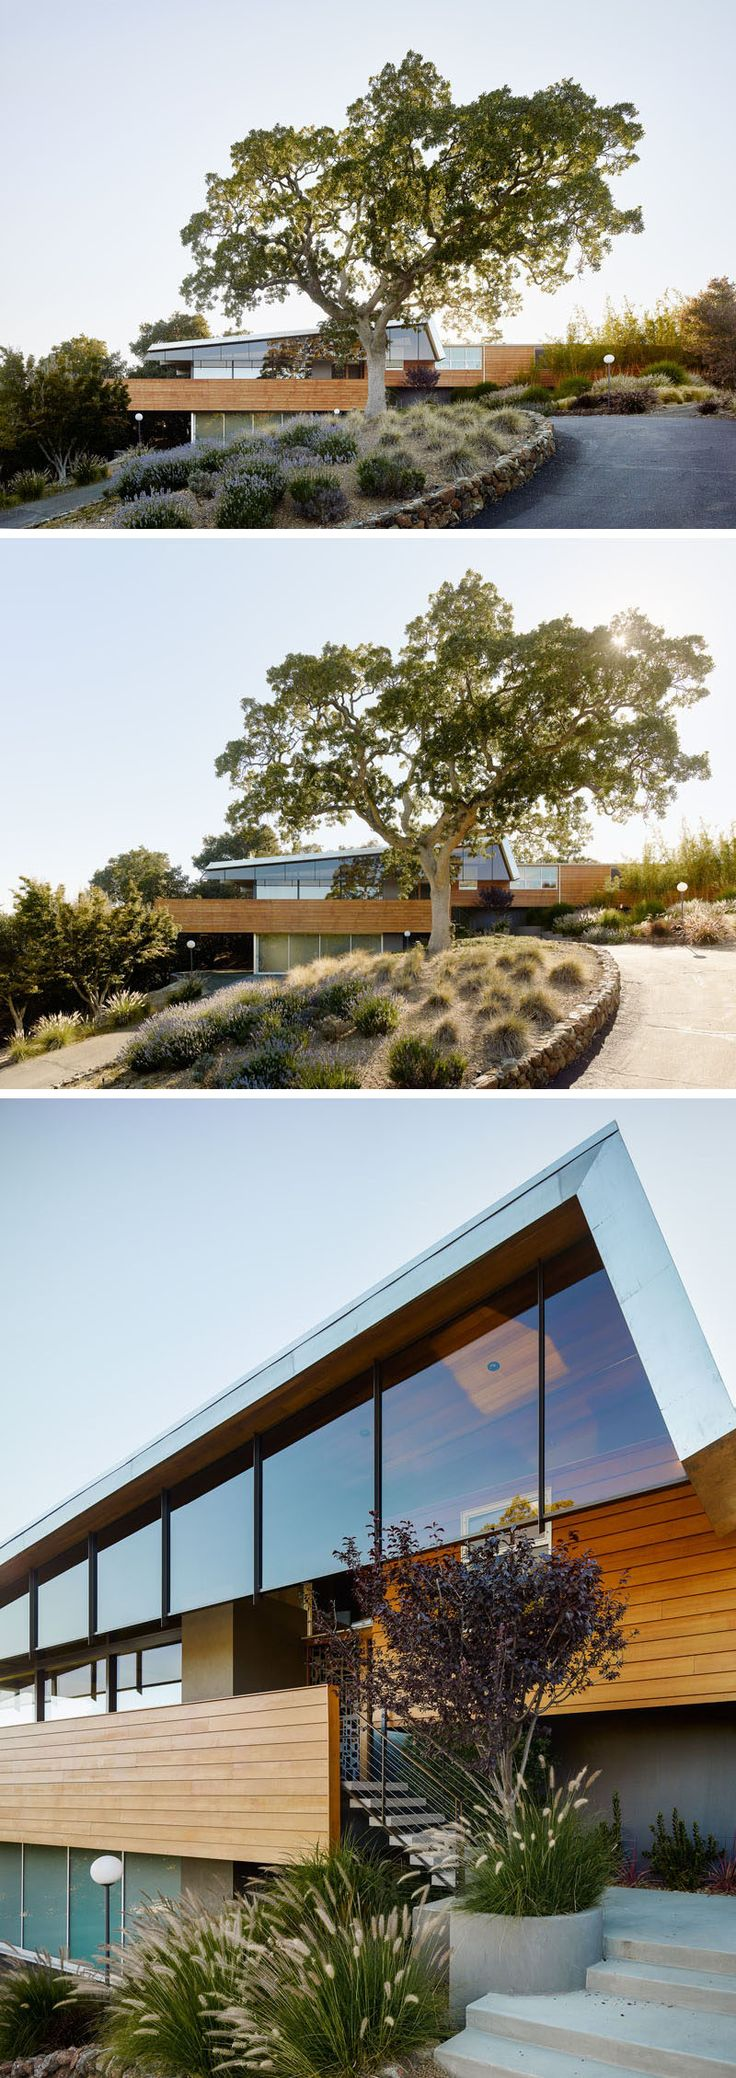 384 best architecture images on Pinterest | Architecture ...